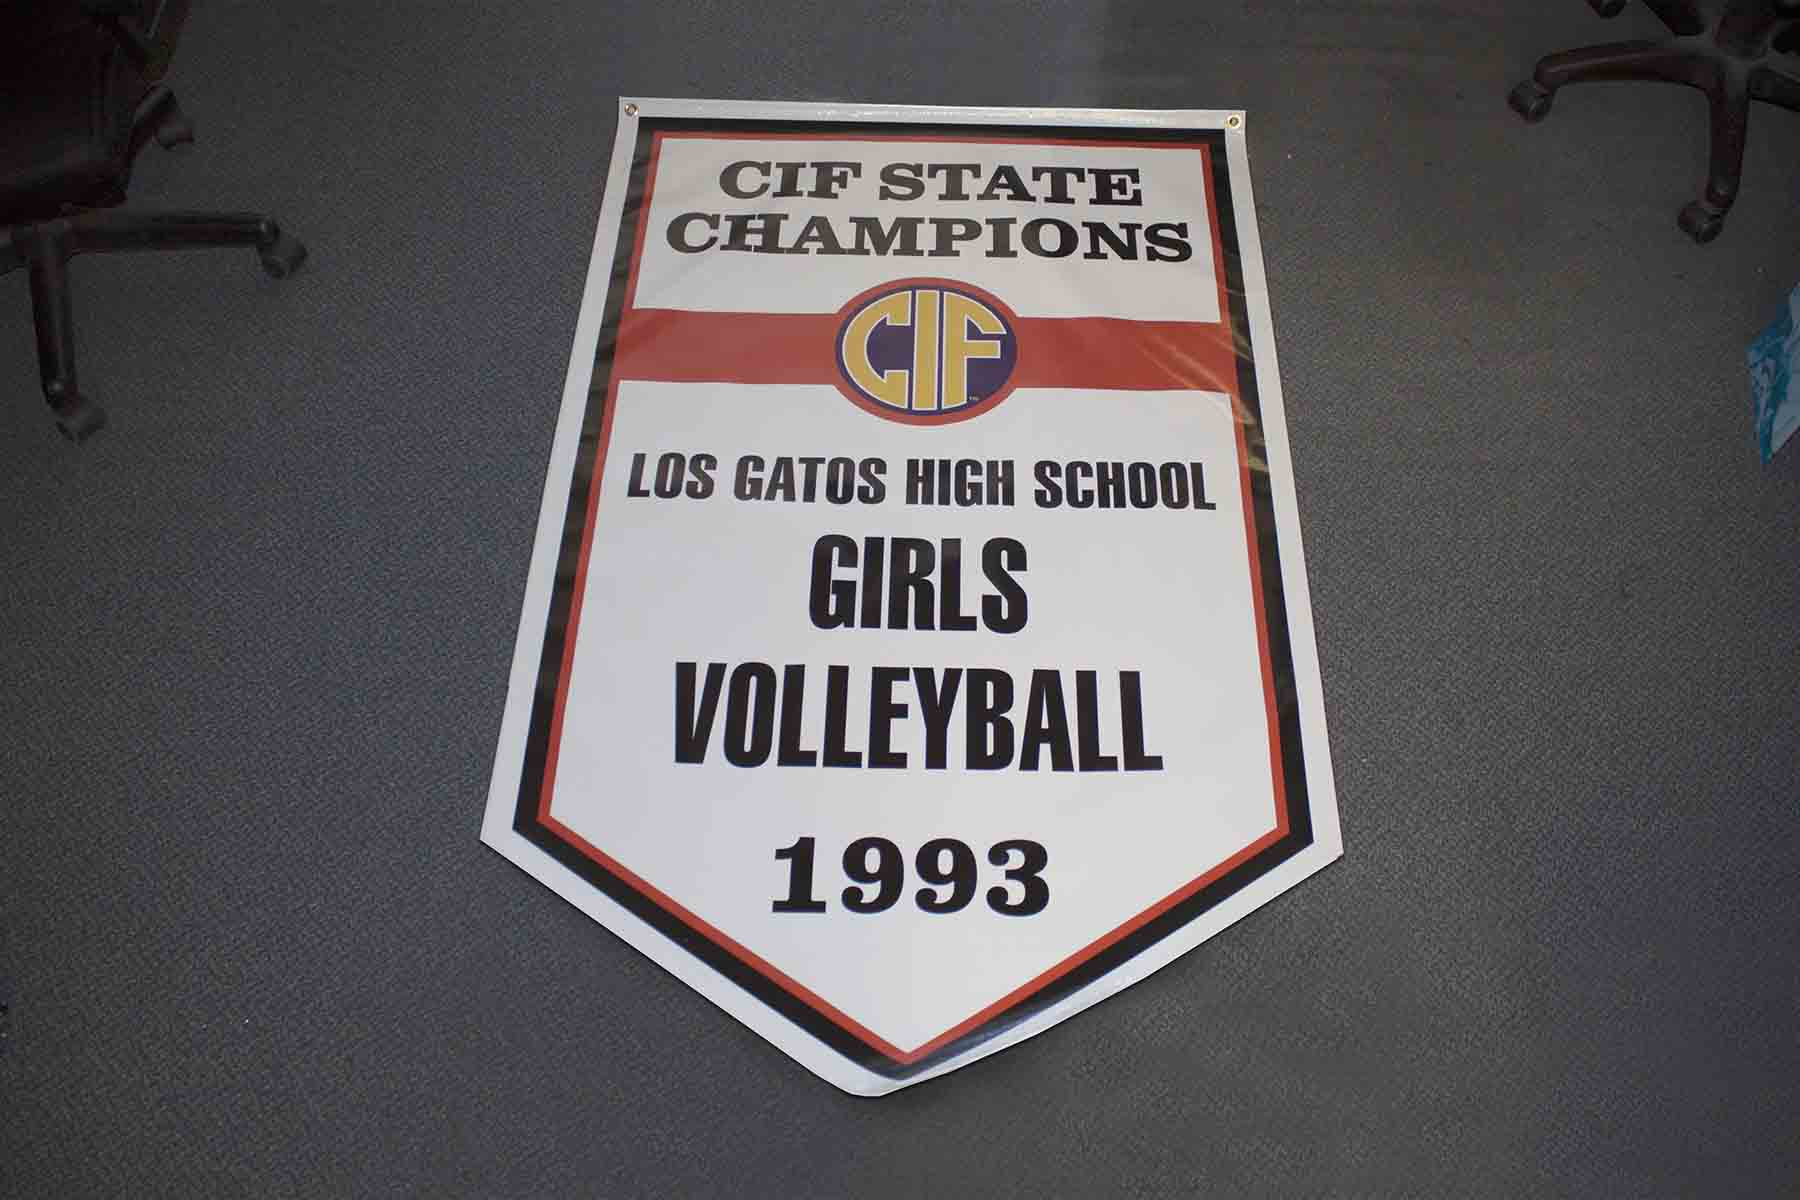 LGHS Volleyball